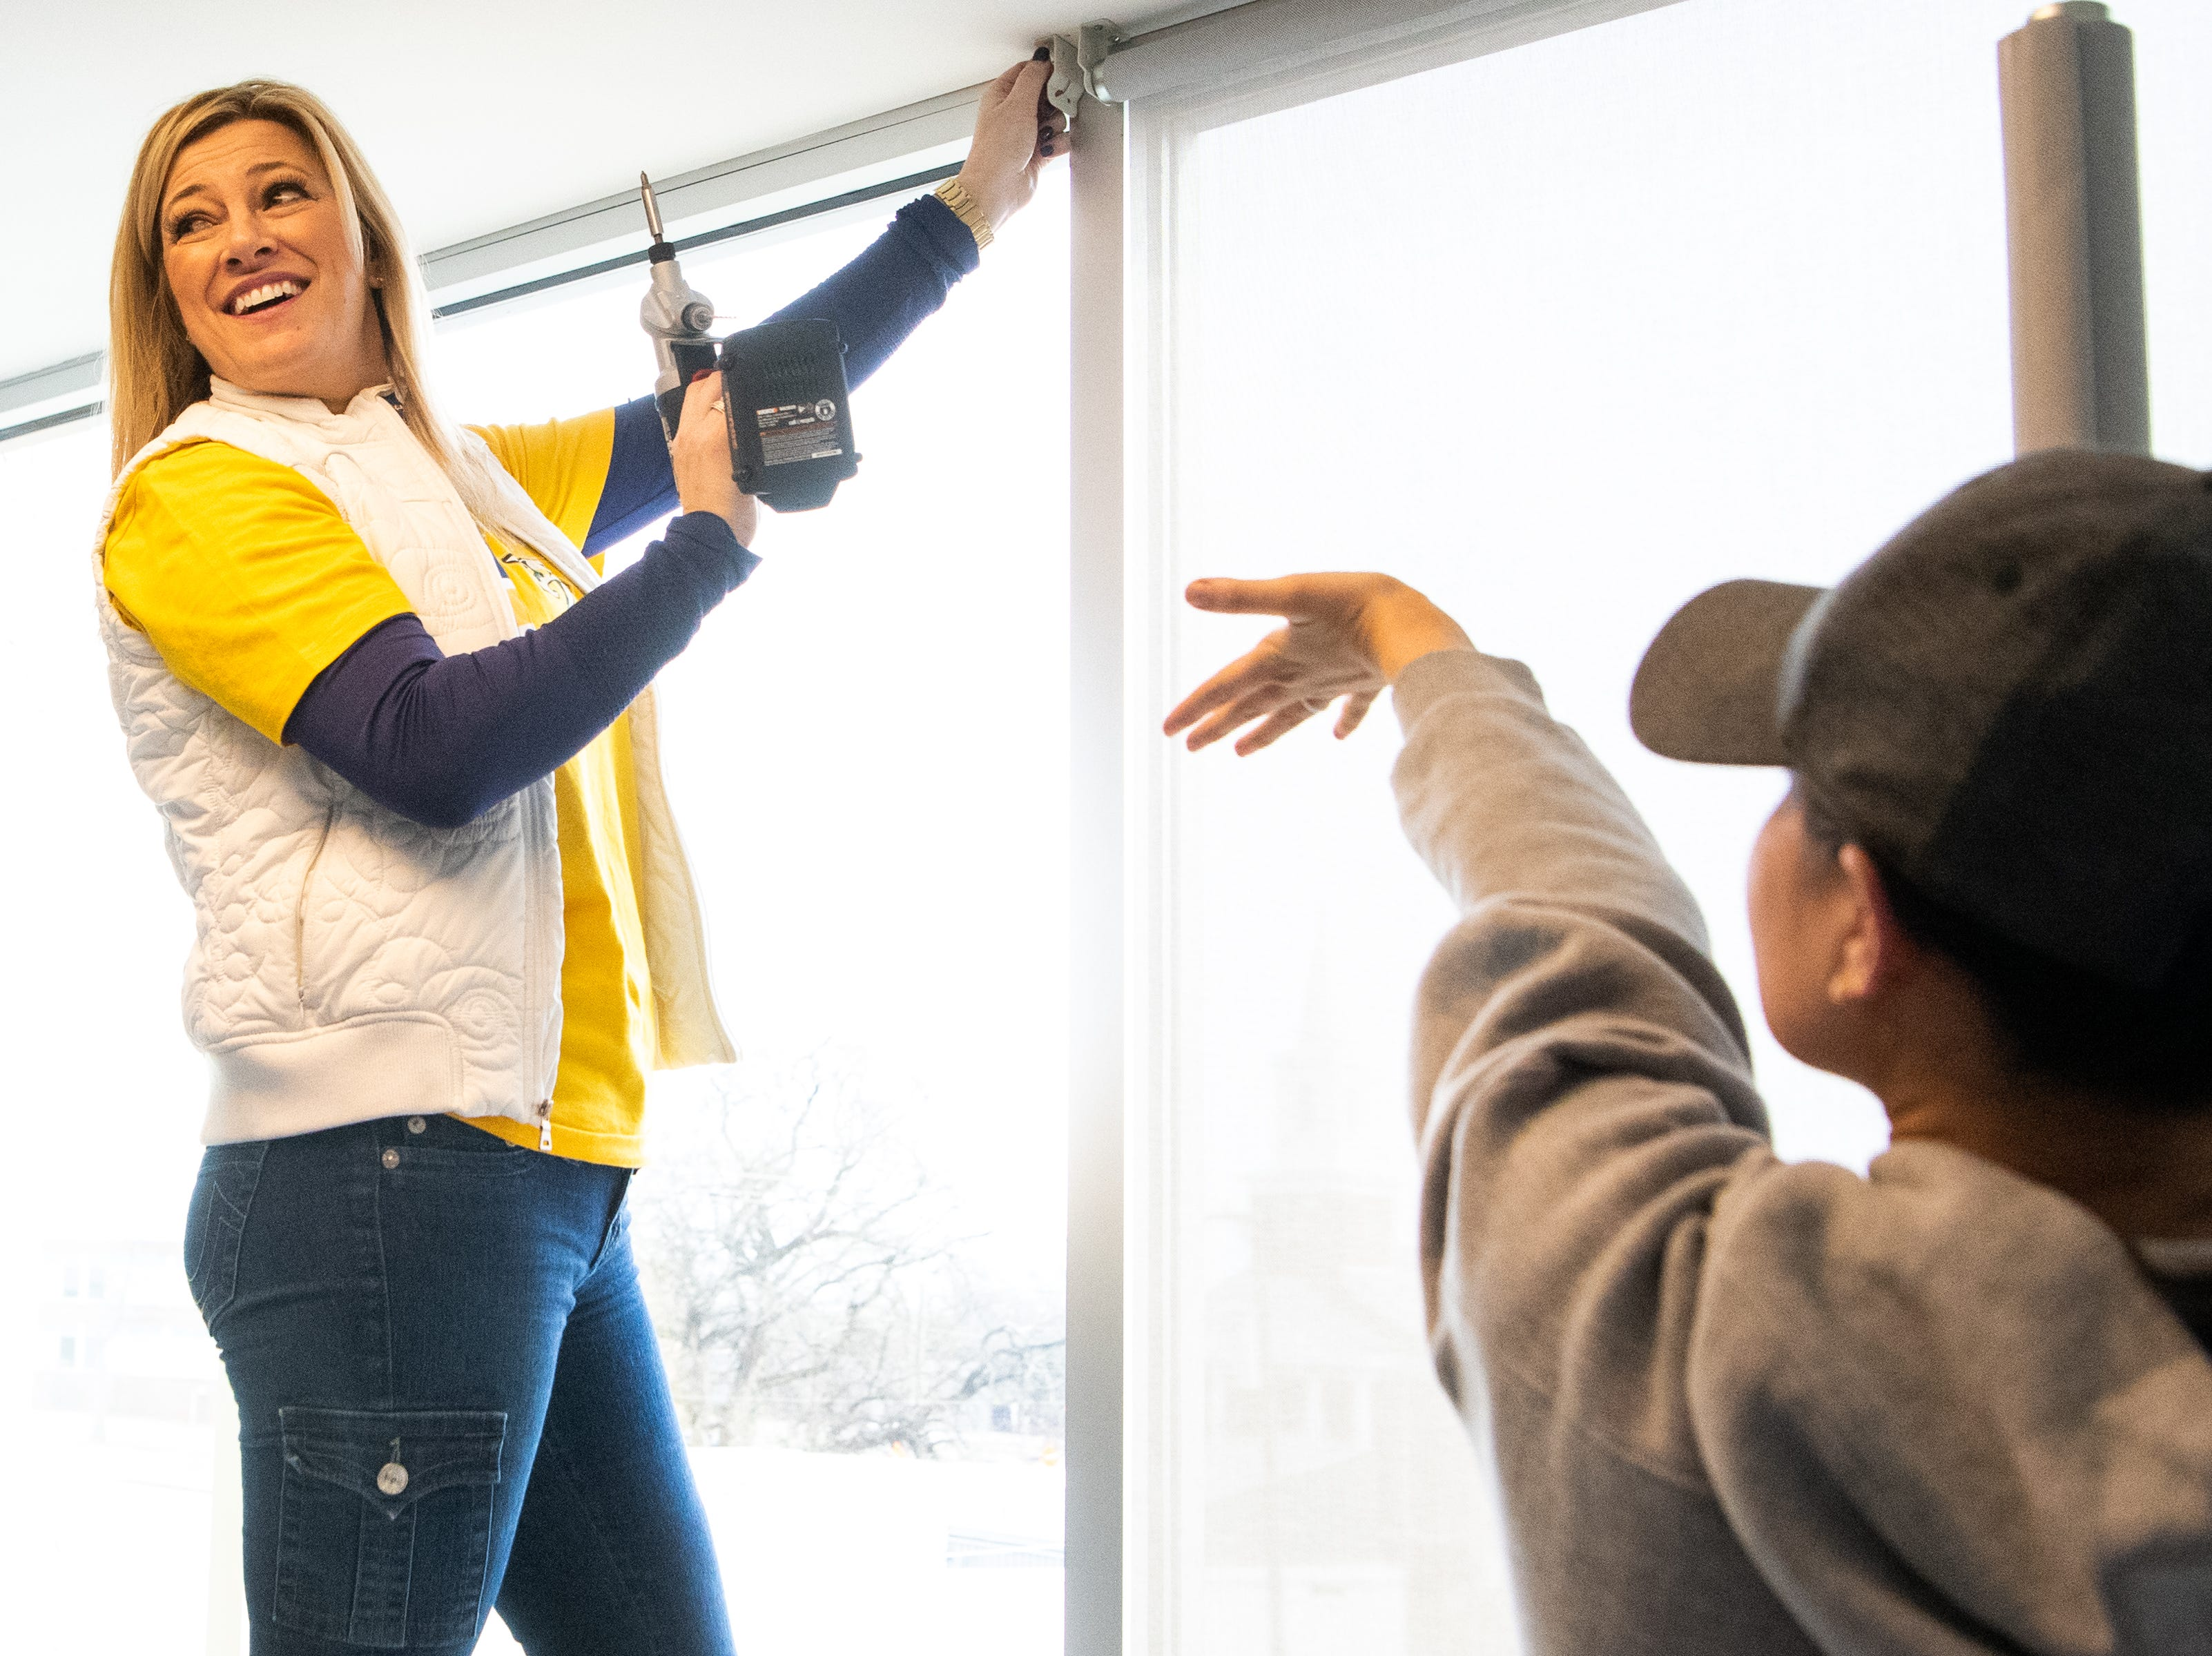 Kristen Laviolette hangs curtains in the entertainment room at Hope Lodge on Tuesday, March 12, 2019. As part of a room makeover, the significant others of Predators players and coaches painted walls, hung framed jerseys, brought in a huge entertainment center and spent two solid days enjoying time with each other.